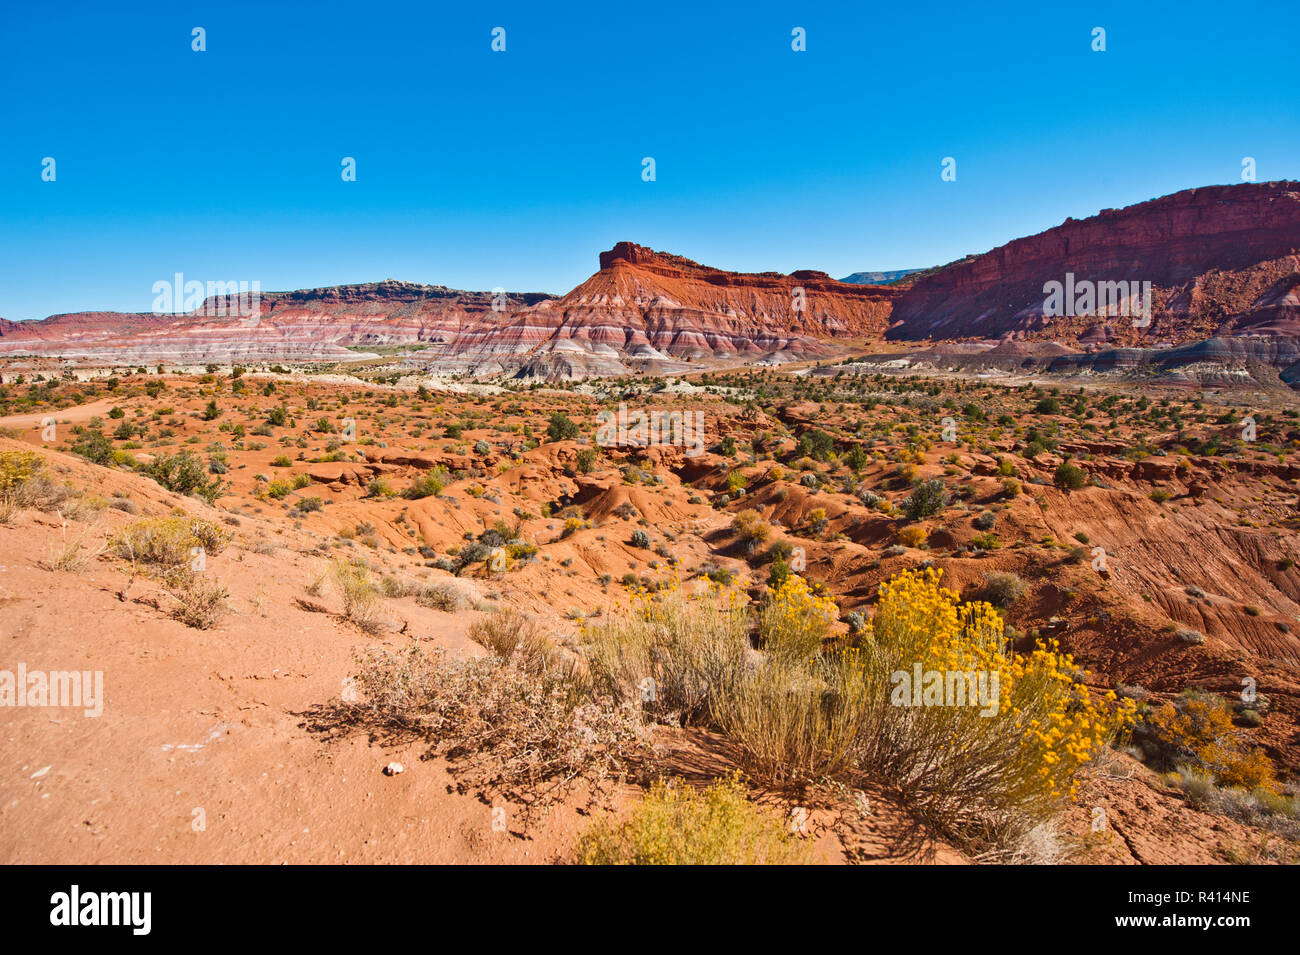 USA, Utah. Paria, Views along trail to Ghost Town - Stock Image